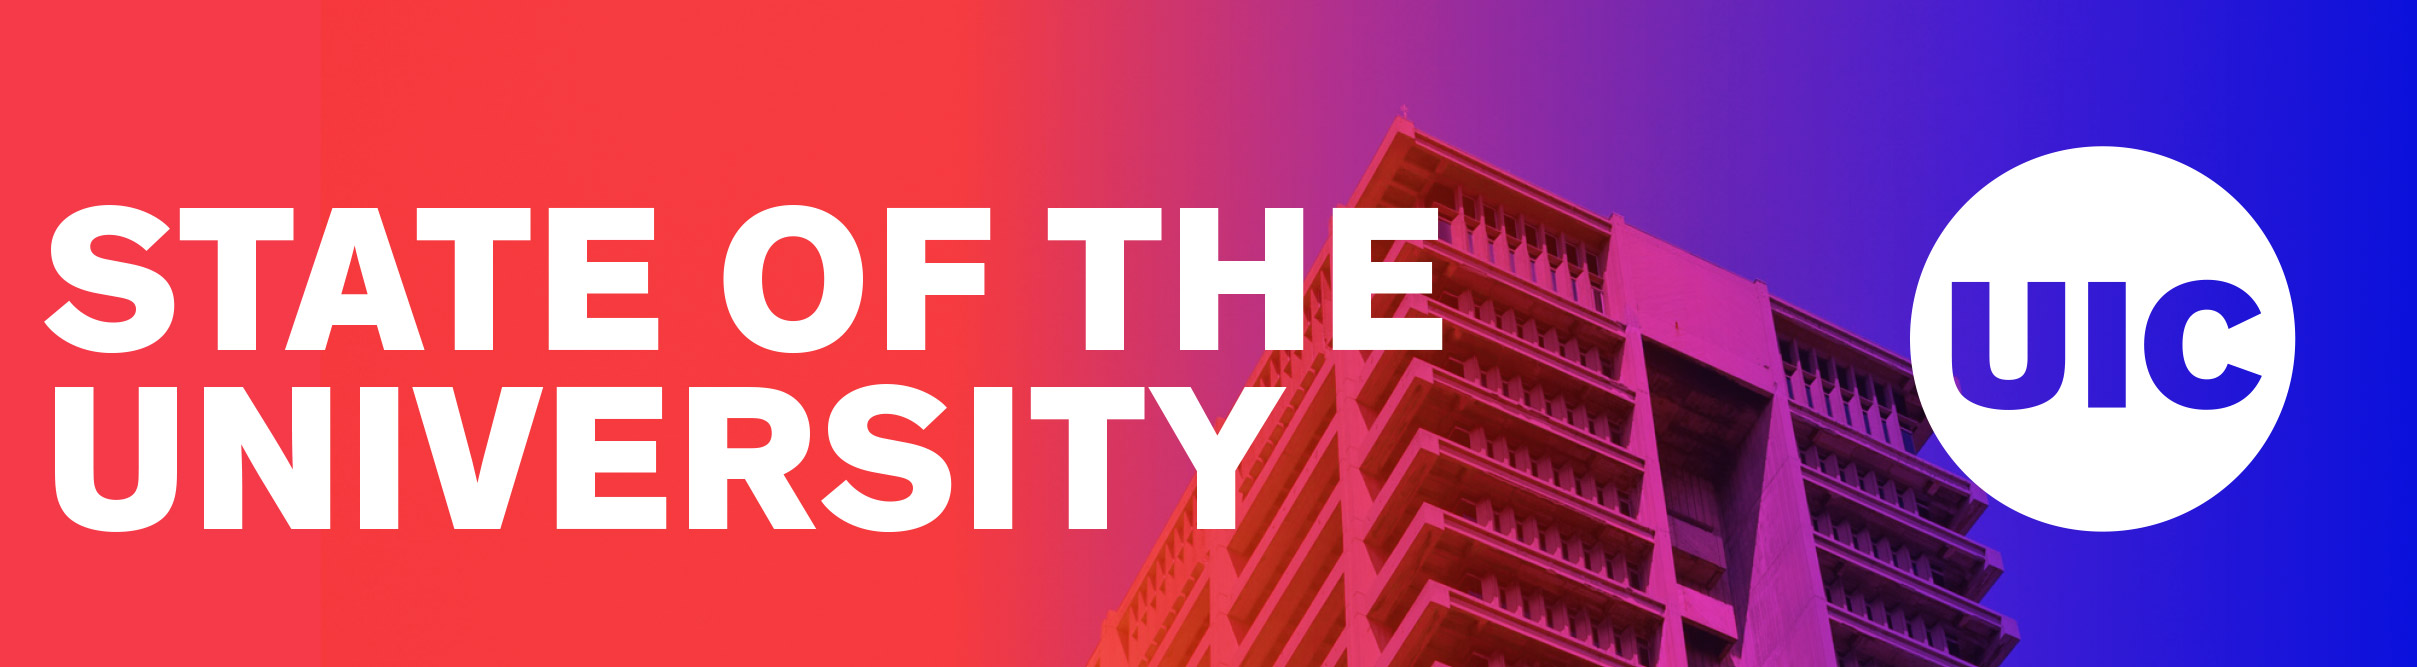 2018 State of the University